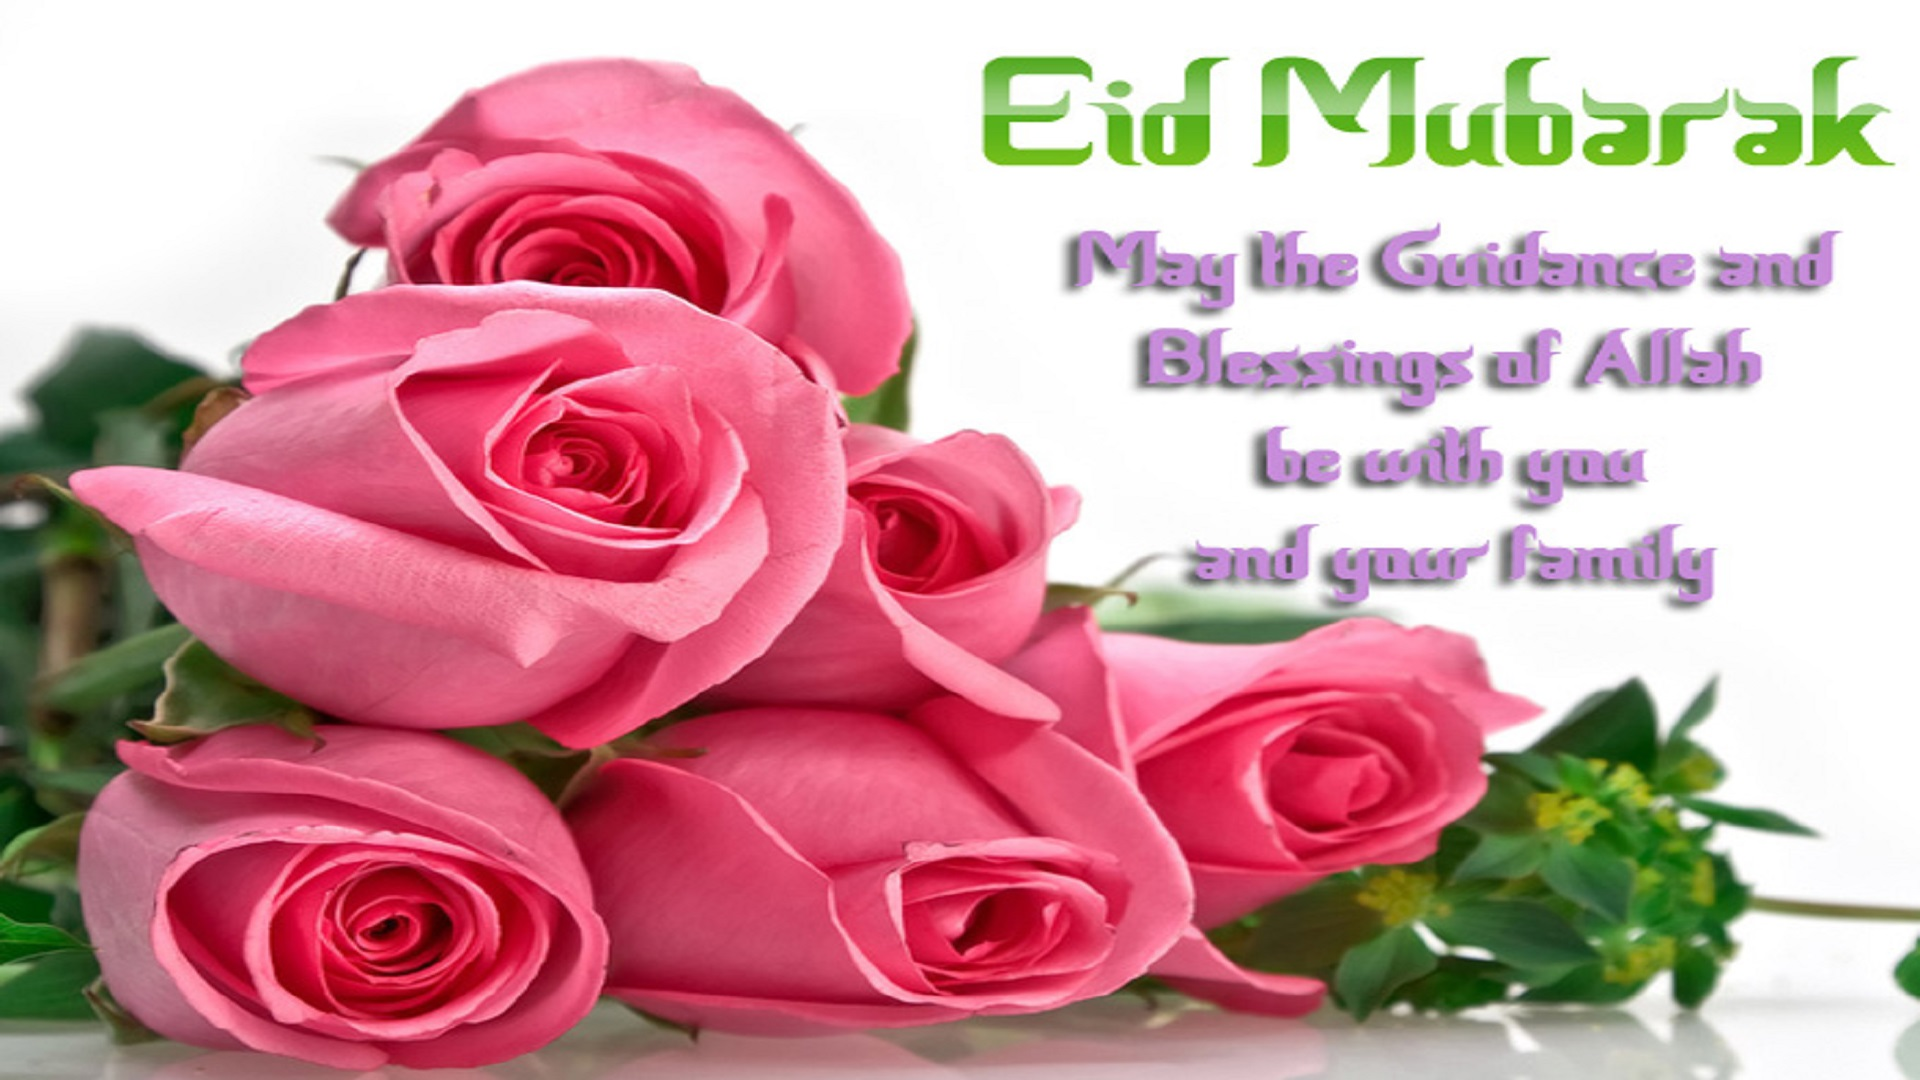 download eid mubarak wishes family mobile free hd images